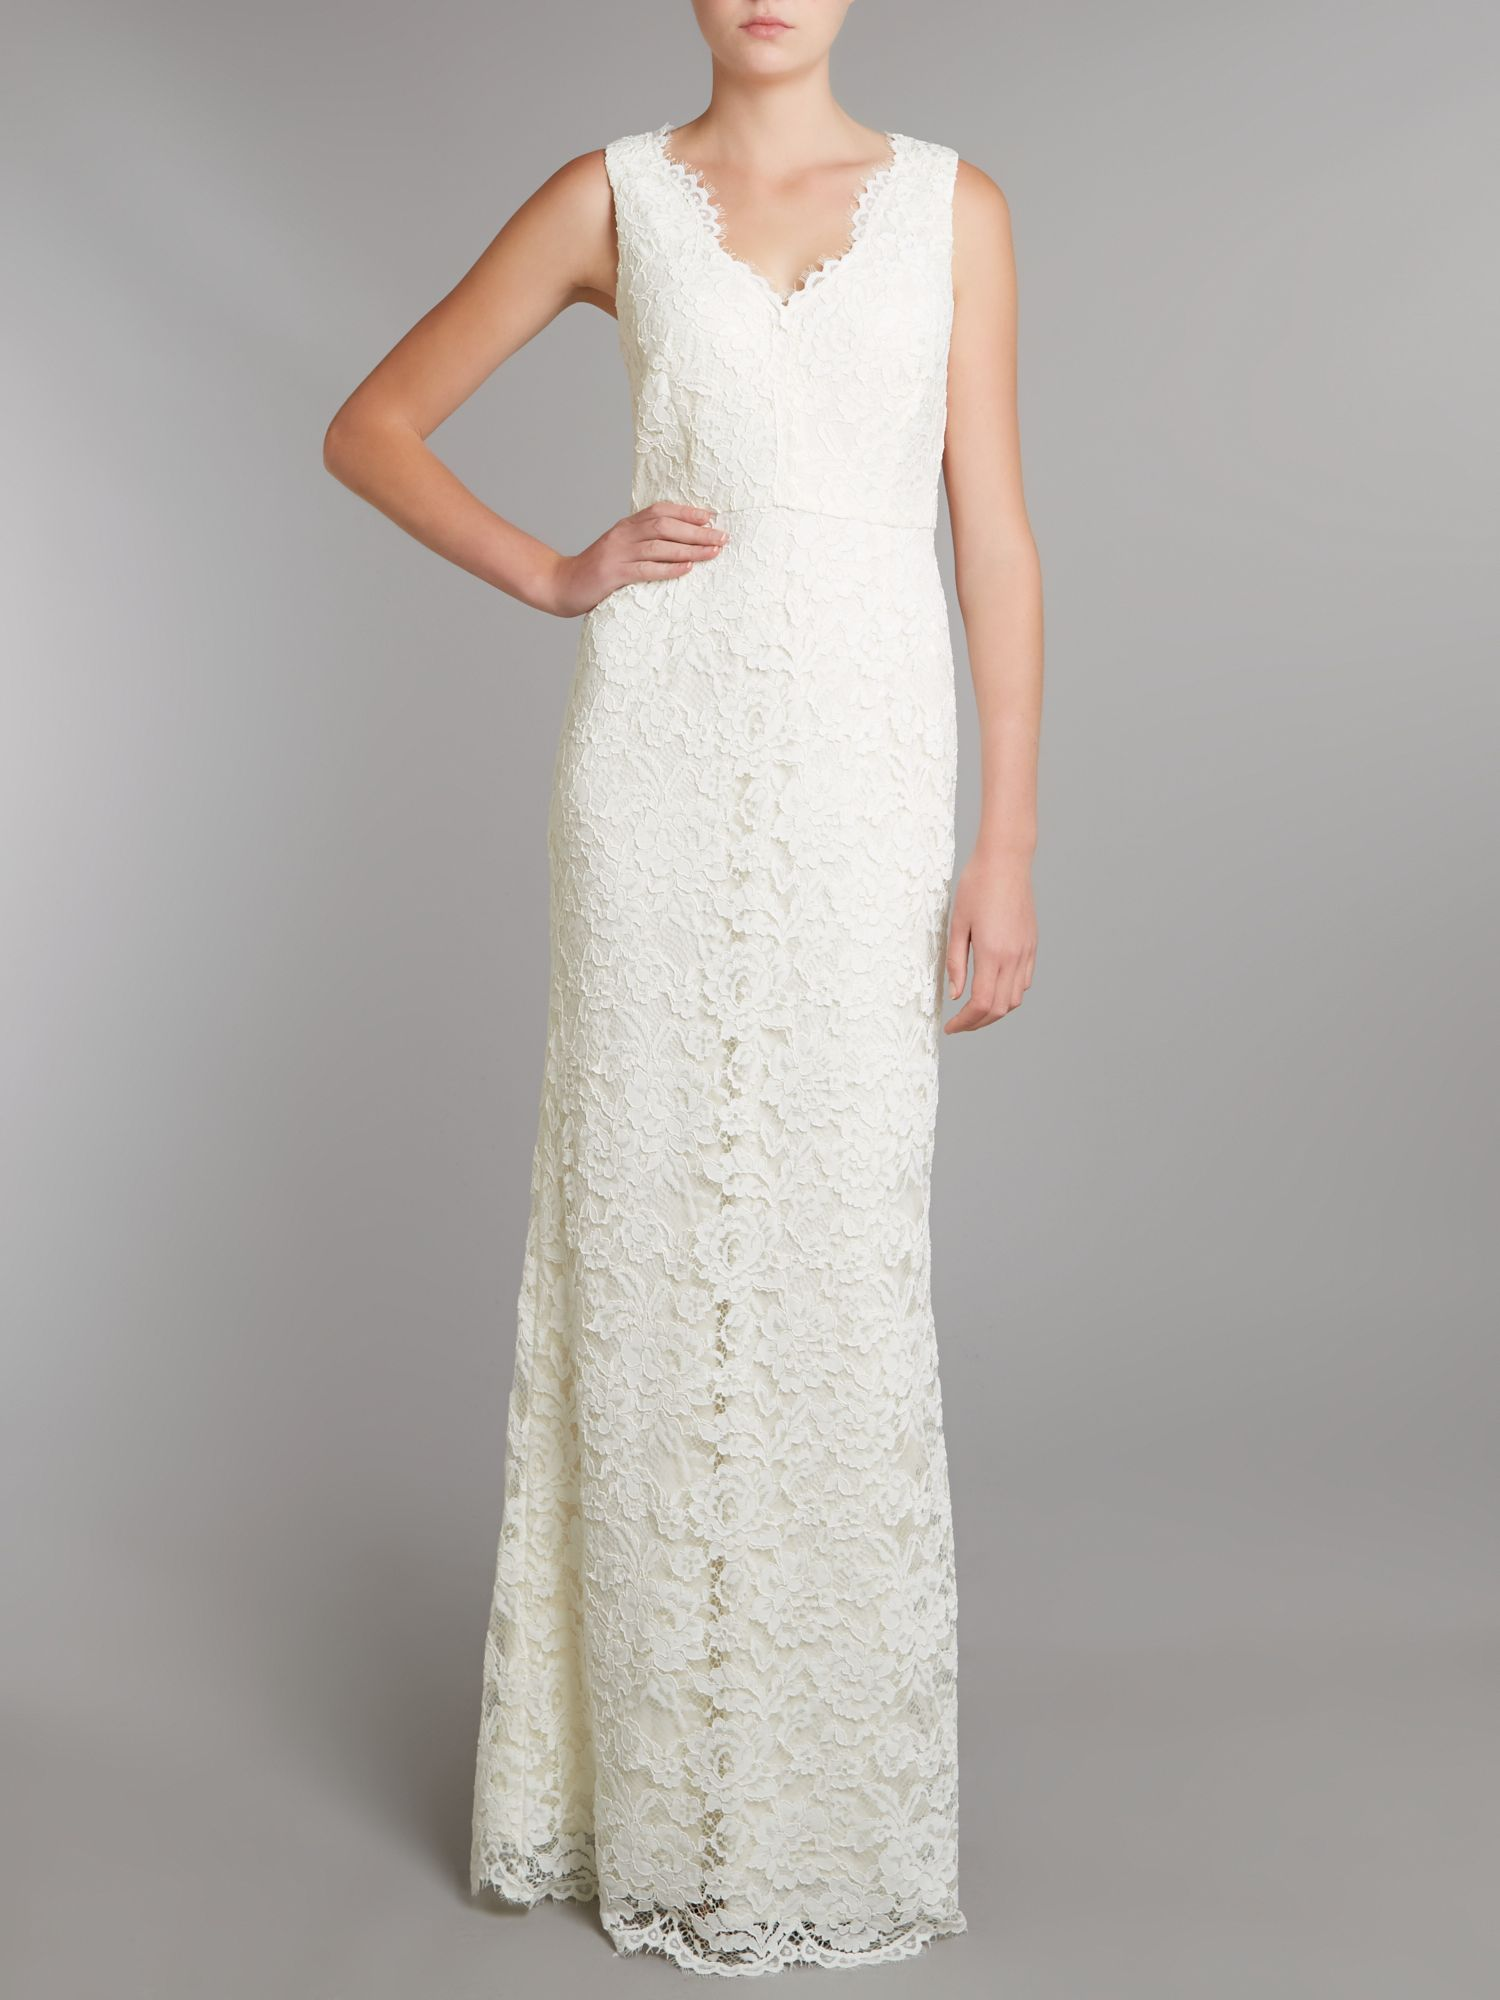 Amazing Adrianna Papell Sleeveless Lace Gown Motif - Best Evening ...